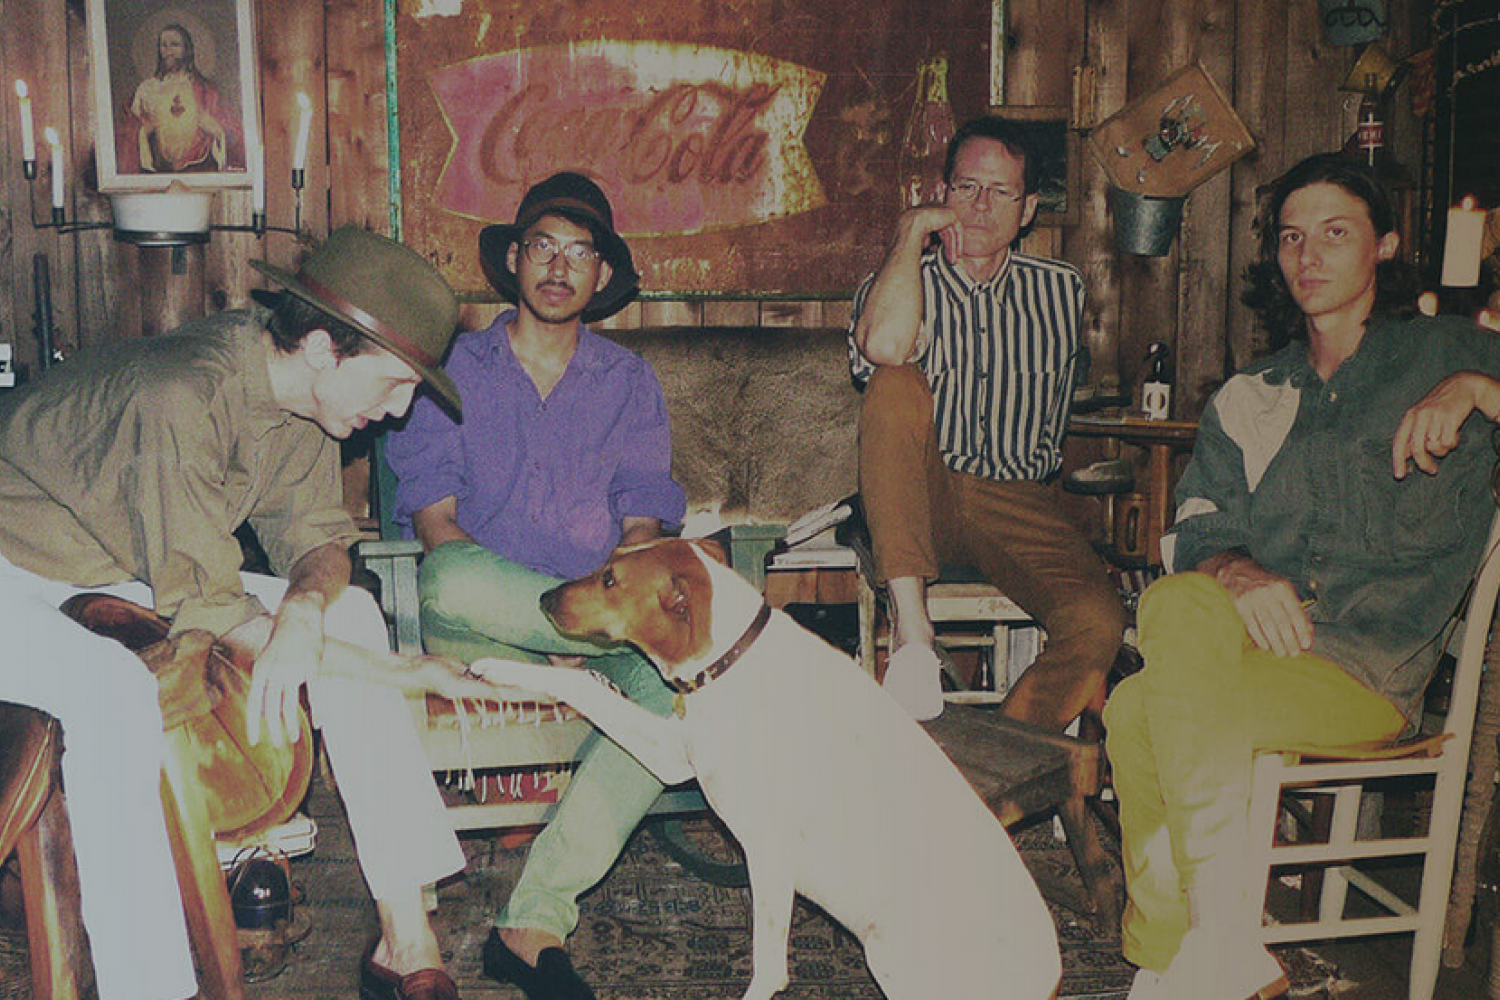 Deerhunter have revealed the title of their forthcoming LP. 'Fading Frontier', out October 16, via 4AD.